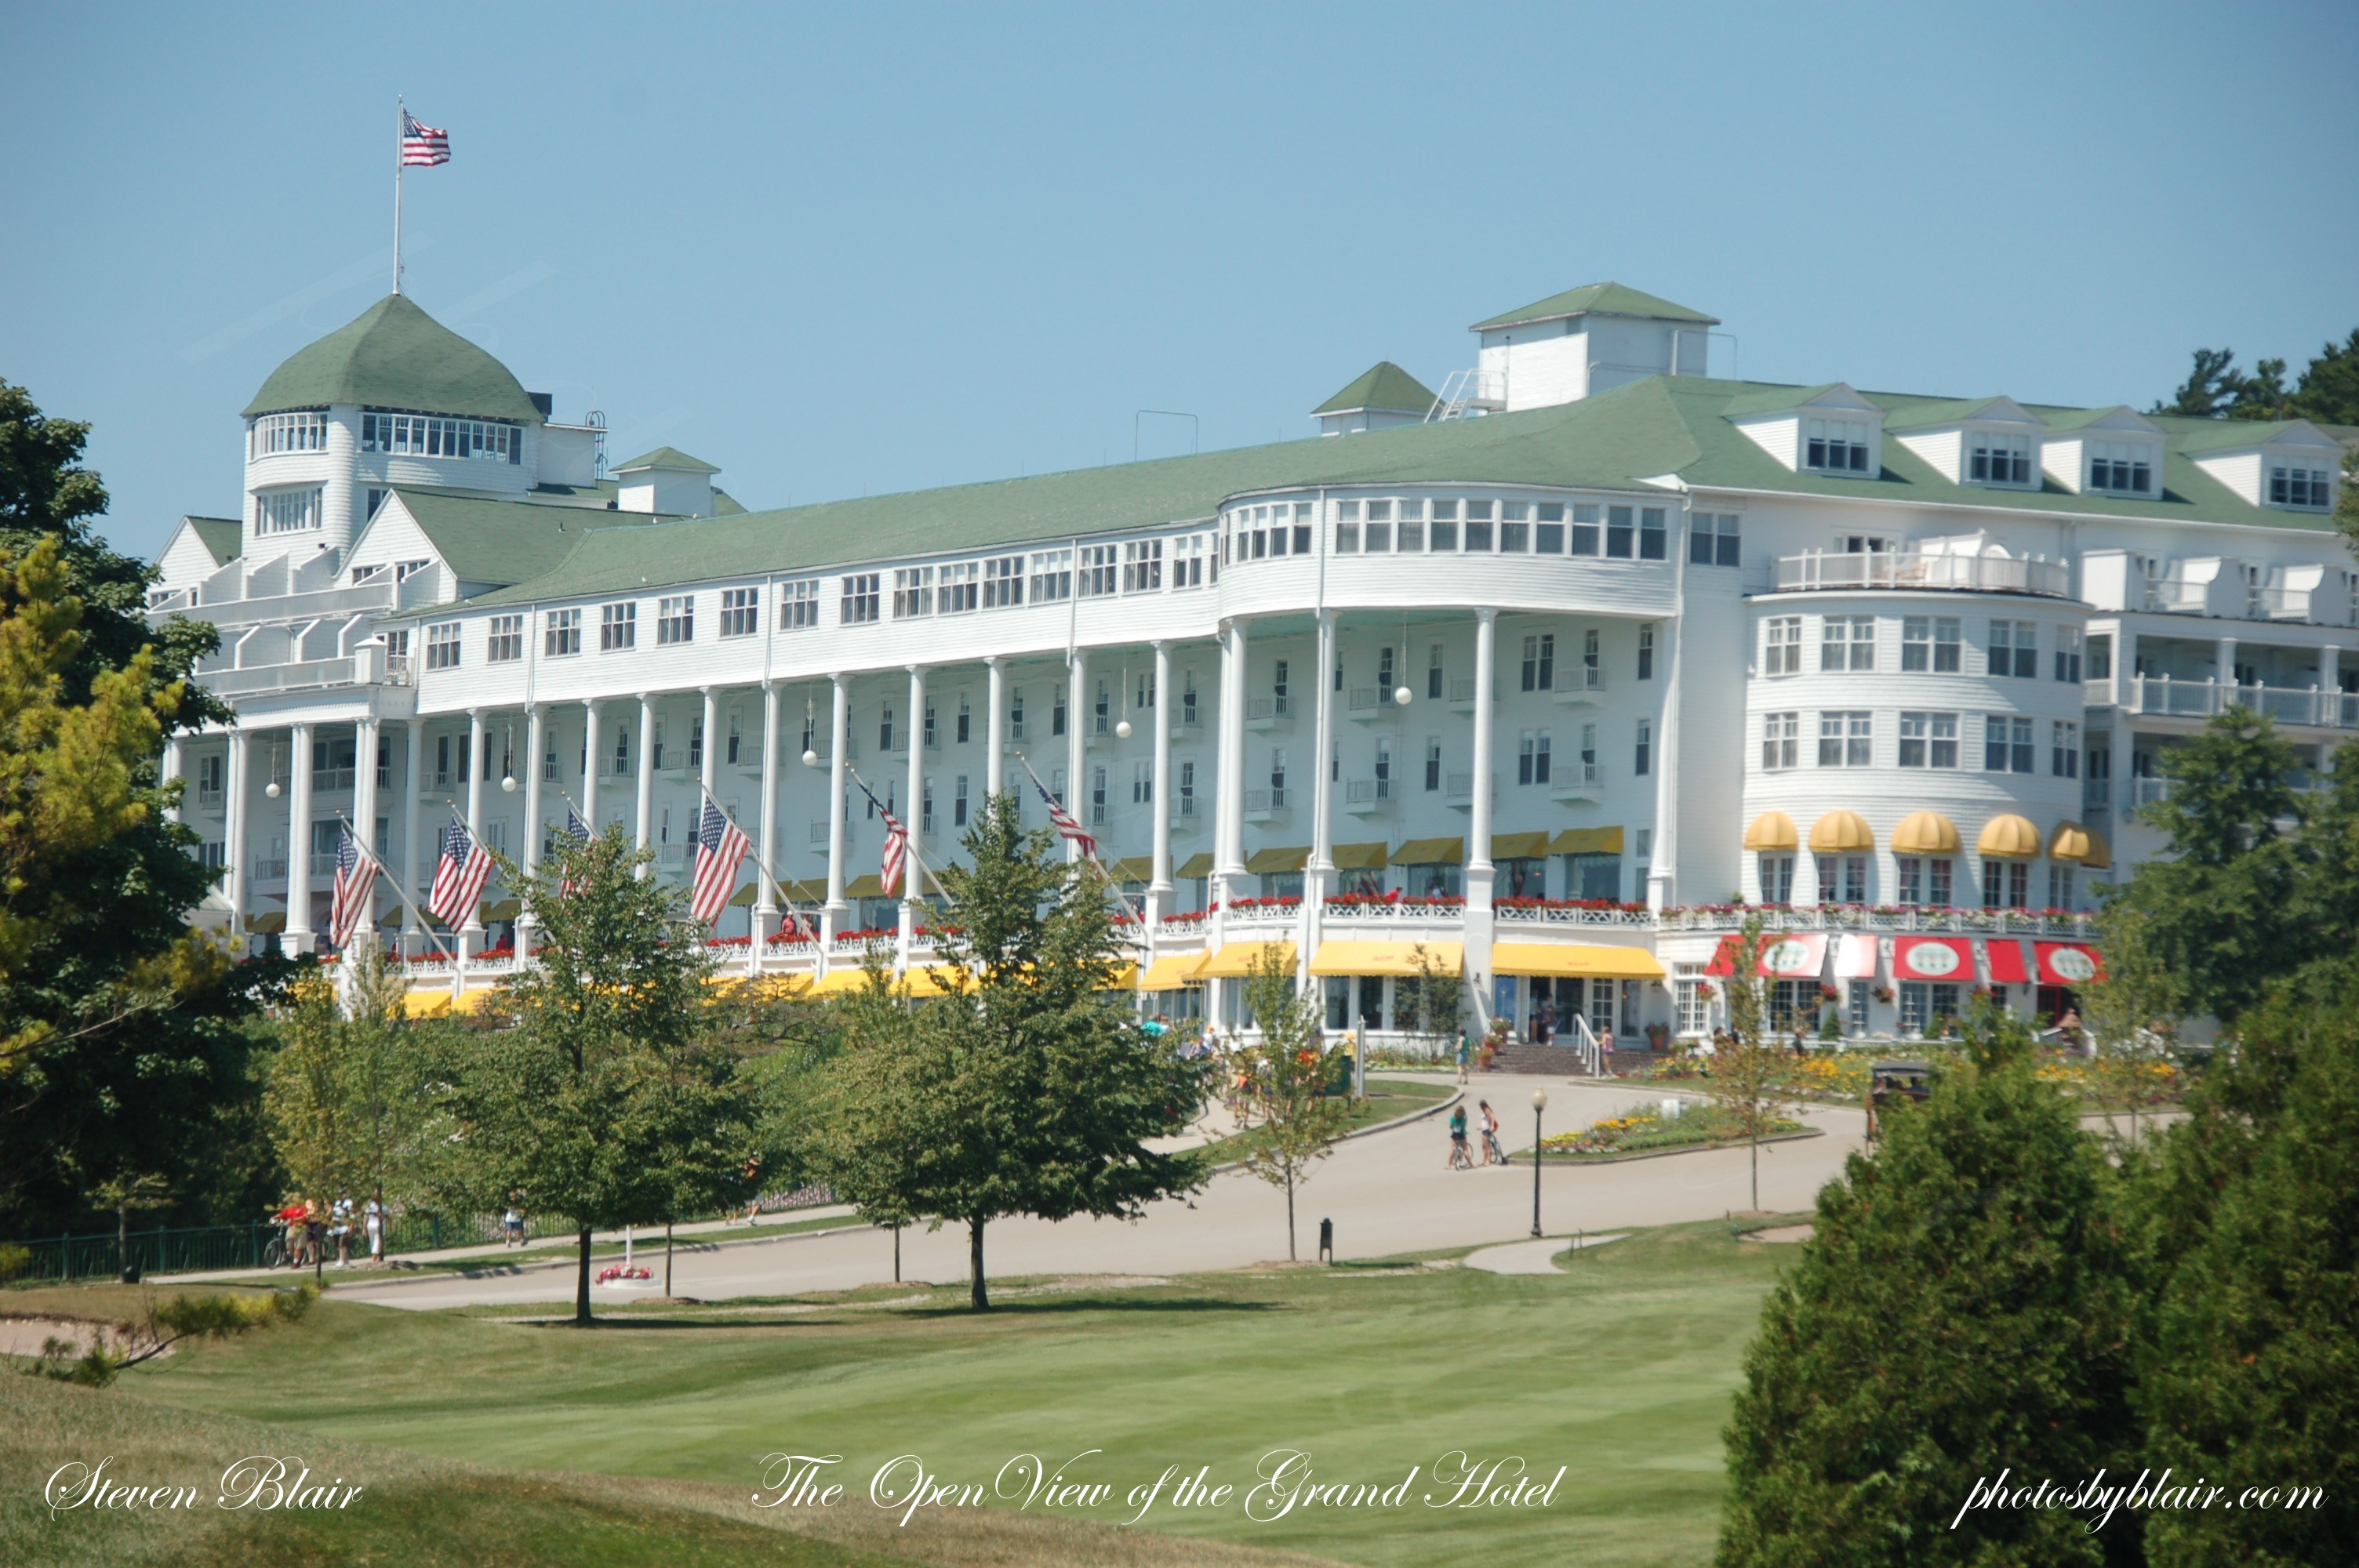 It Has Truly Been An Honor To Have Had The Opportunity For Photograph Weddings And Events Past 16 Years At Grand Hotel On Beautiful Mackinac Island